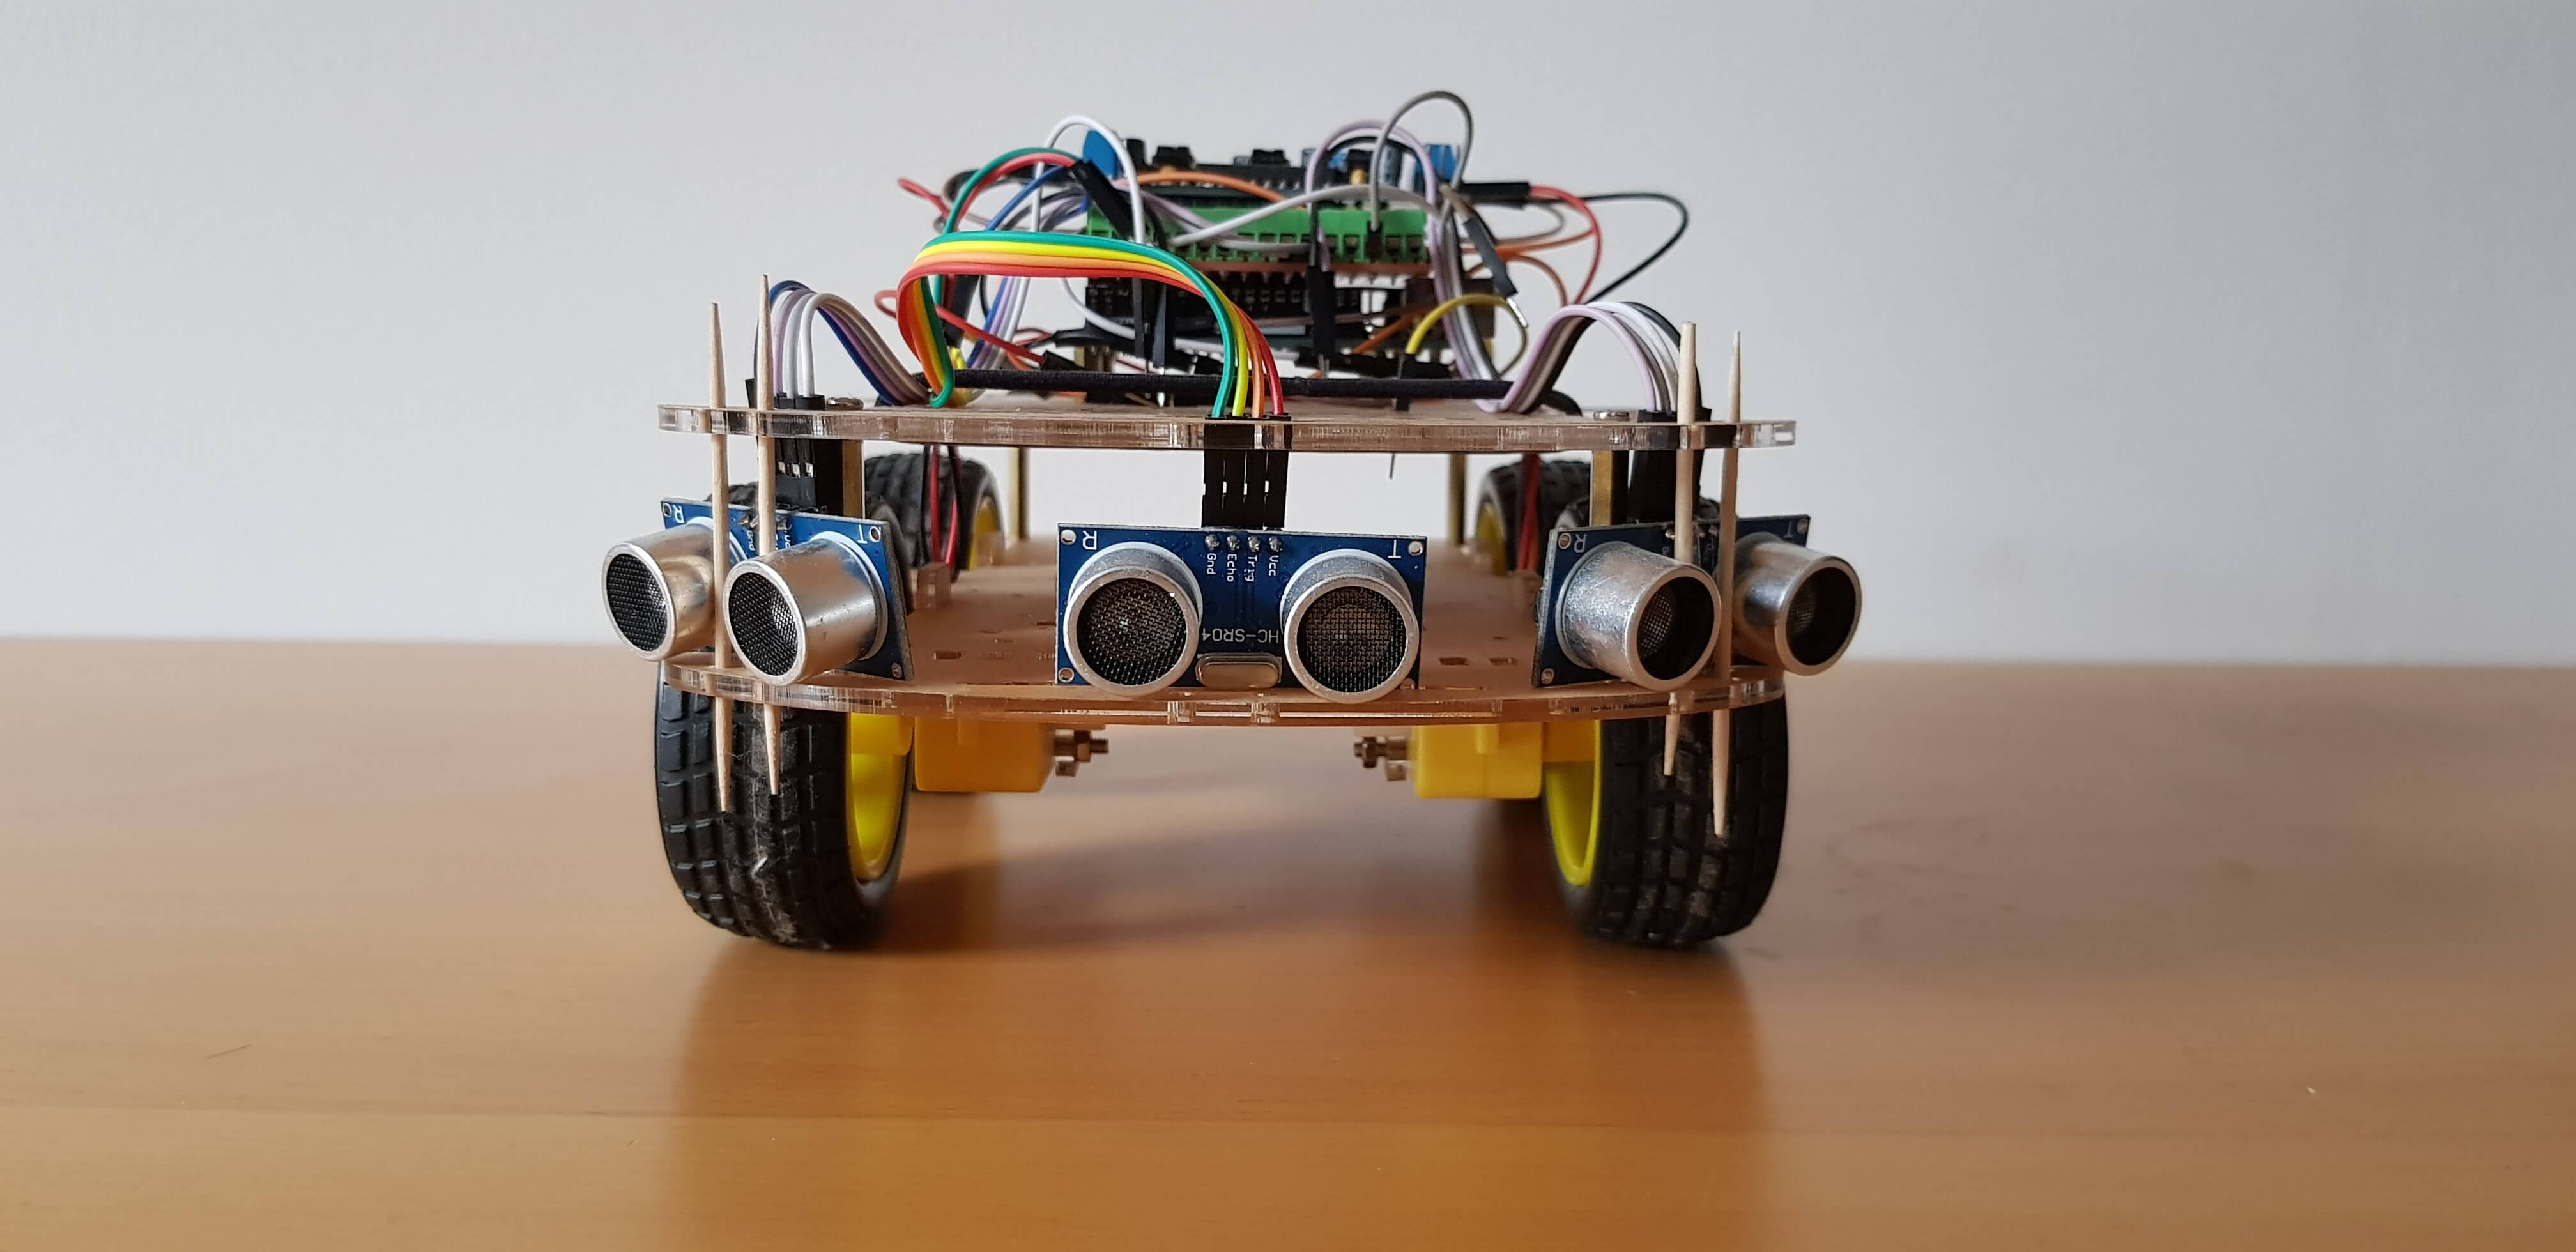 Mobile robotic platform